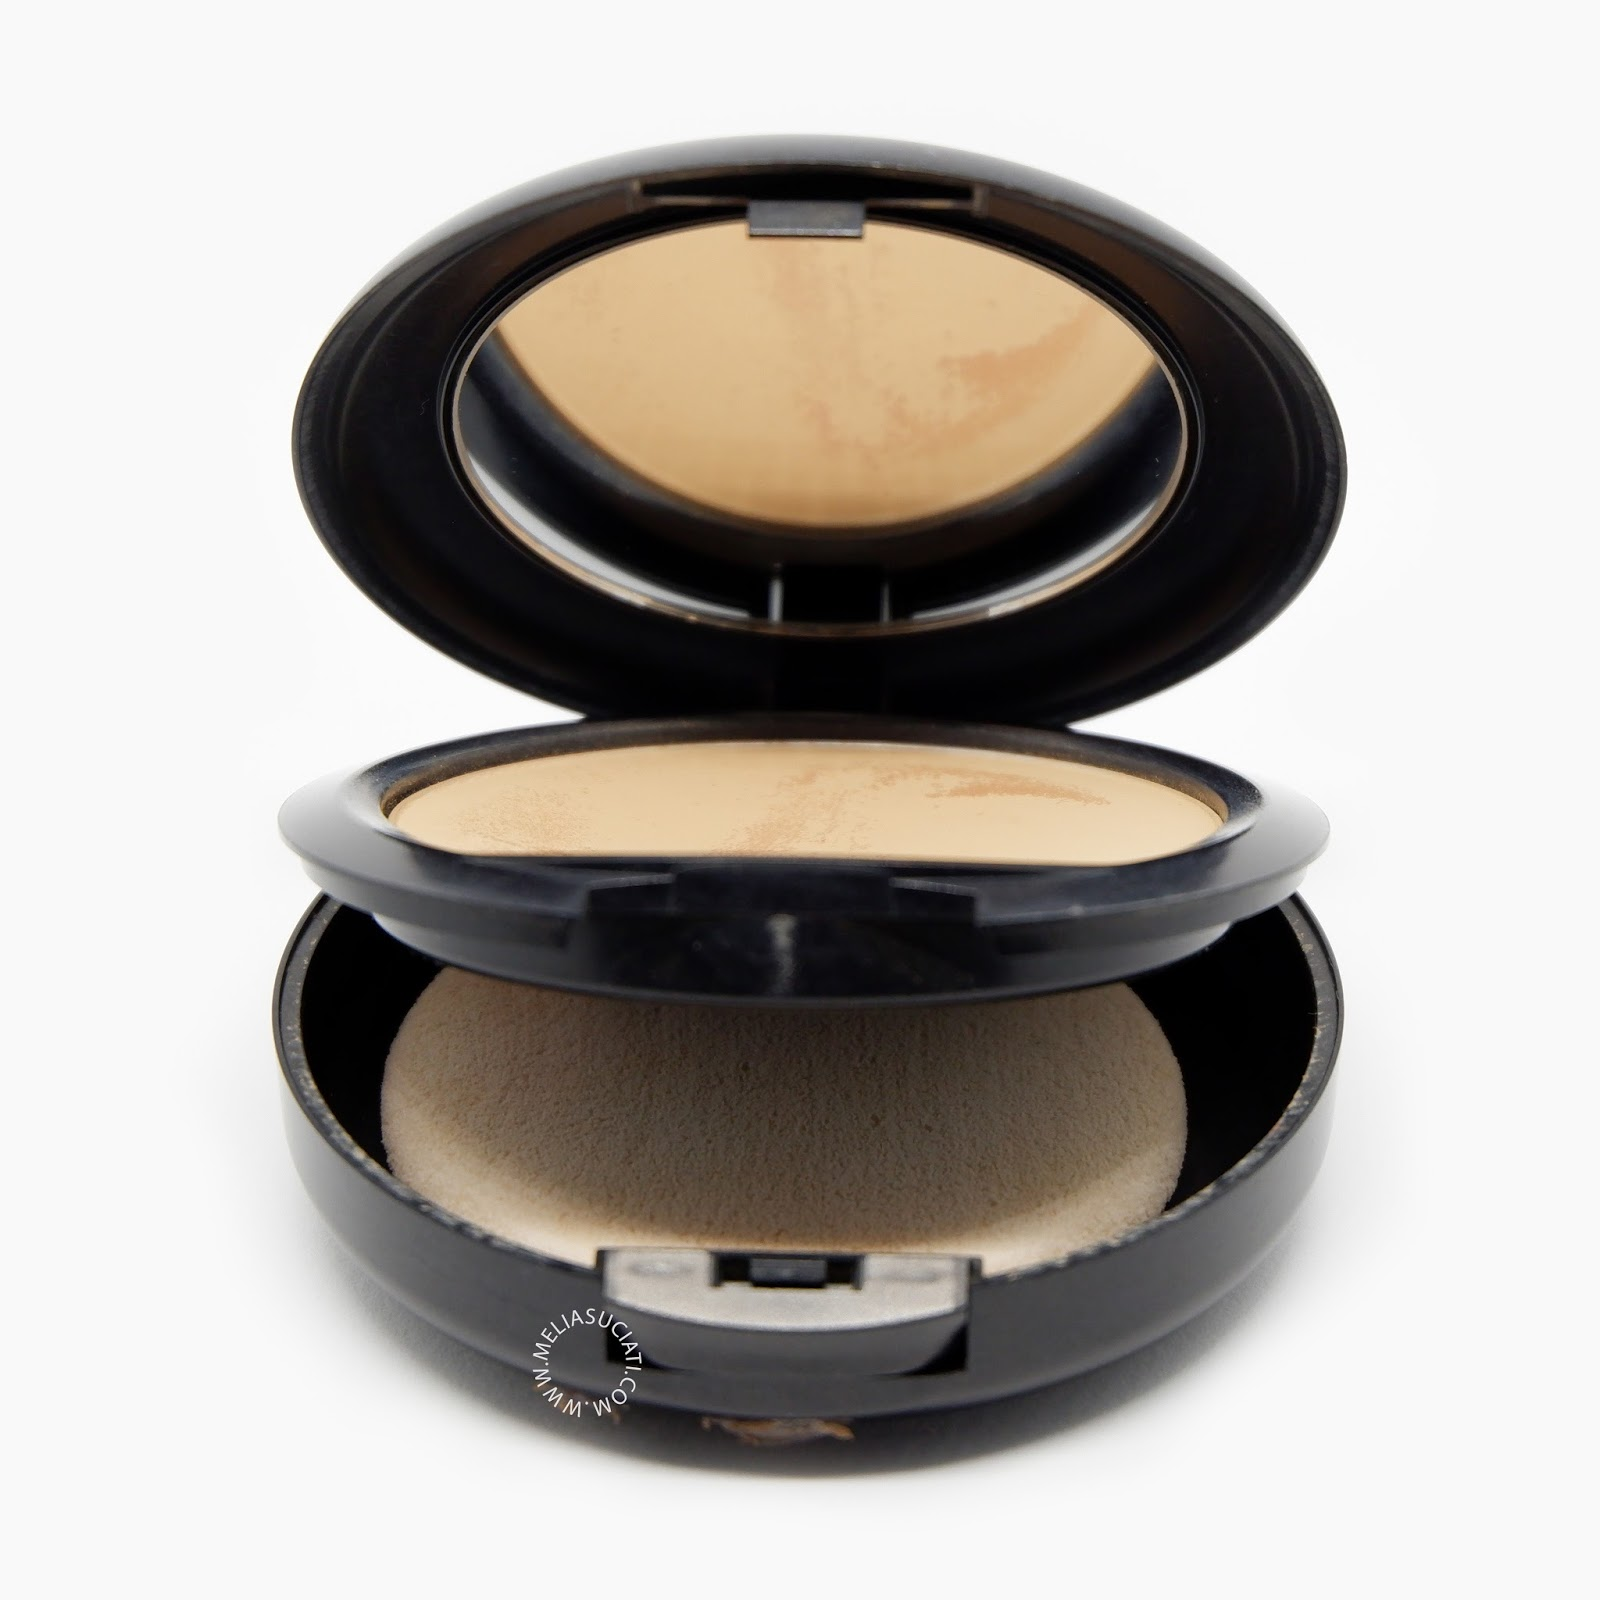 [Review] MAC Studio Fix Powder Plus Foundation NC 35